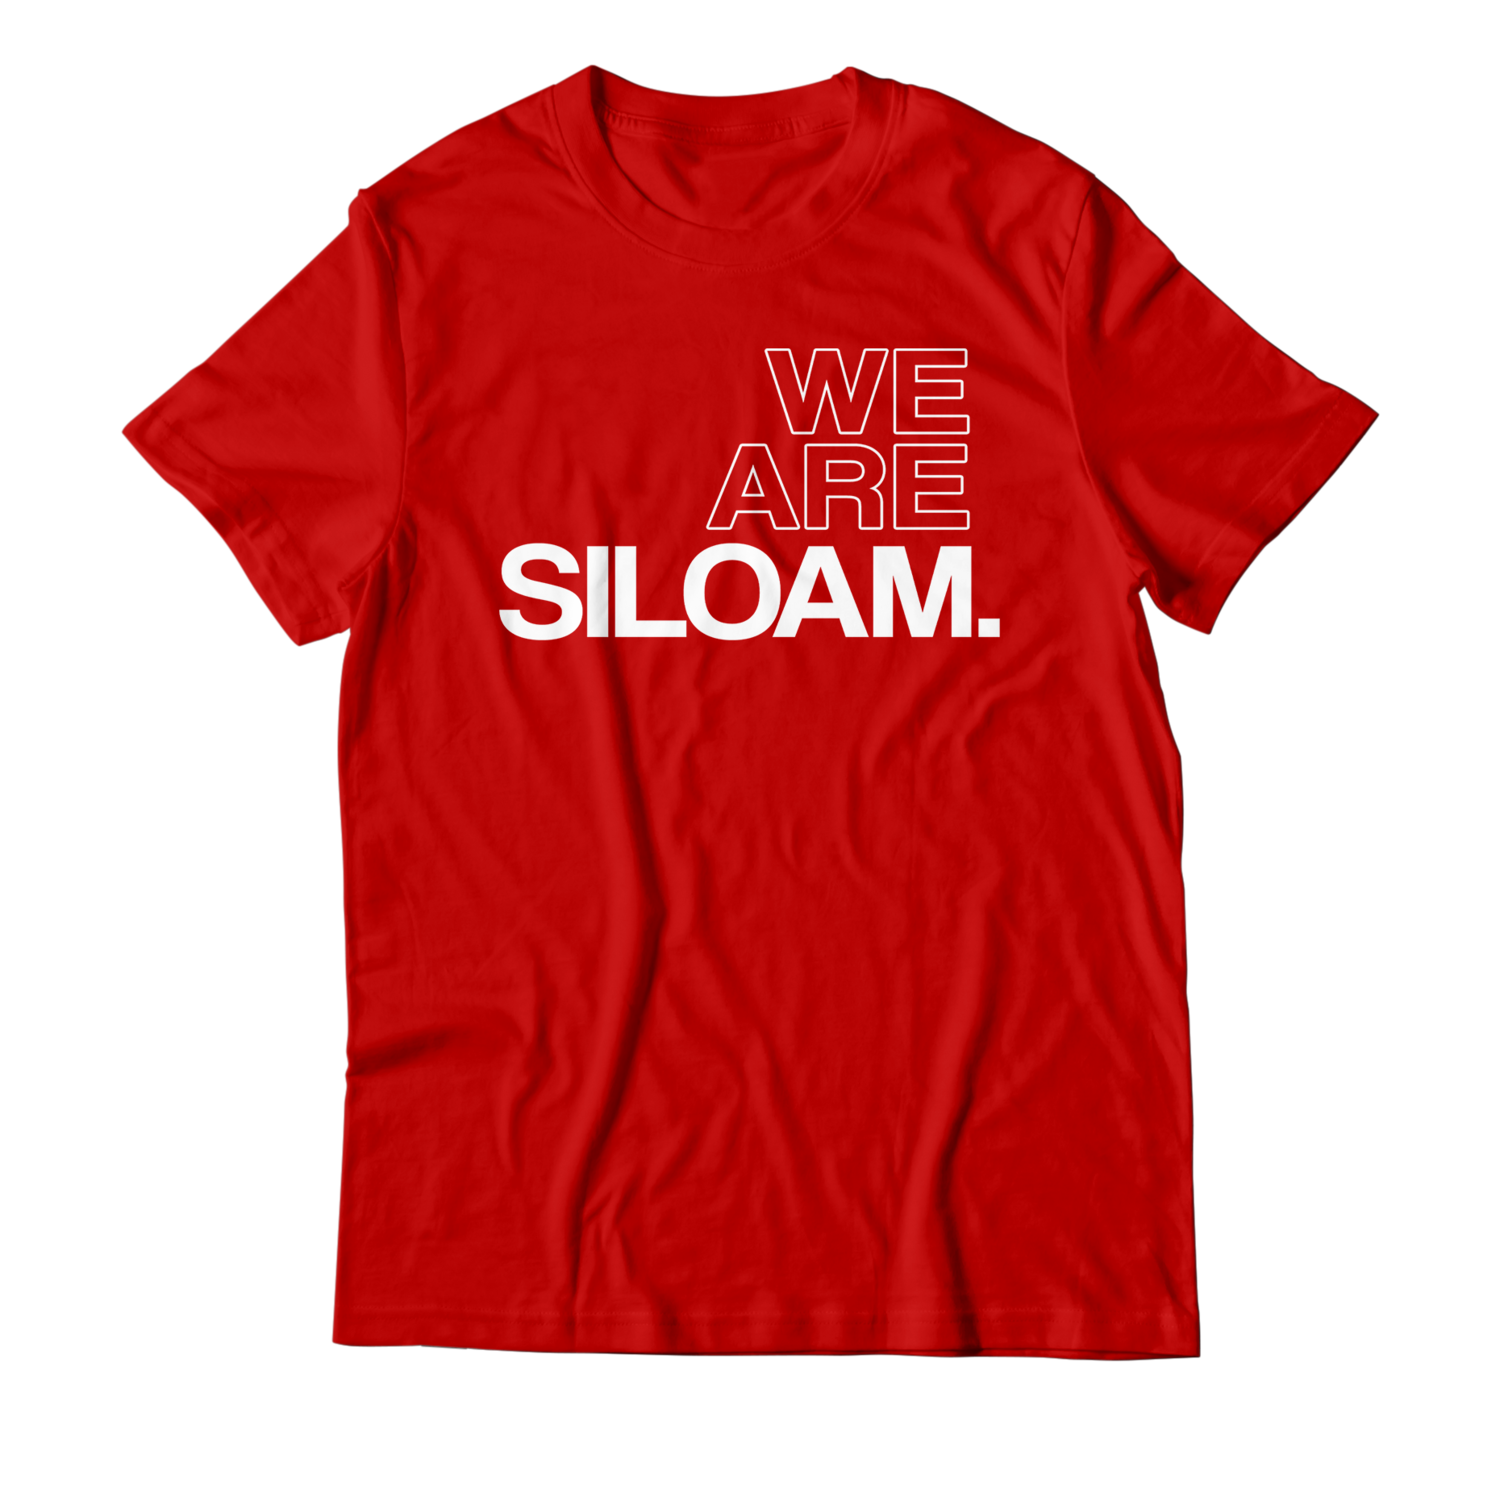 We Are Siloam T-shirt - Red & White